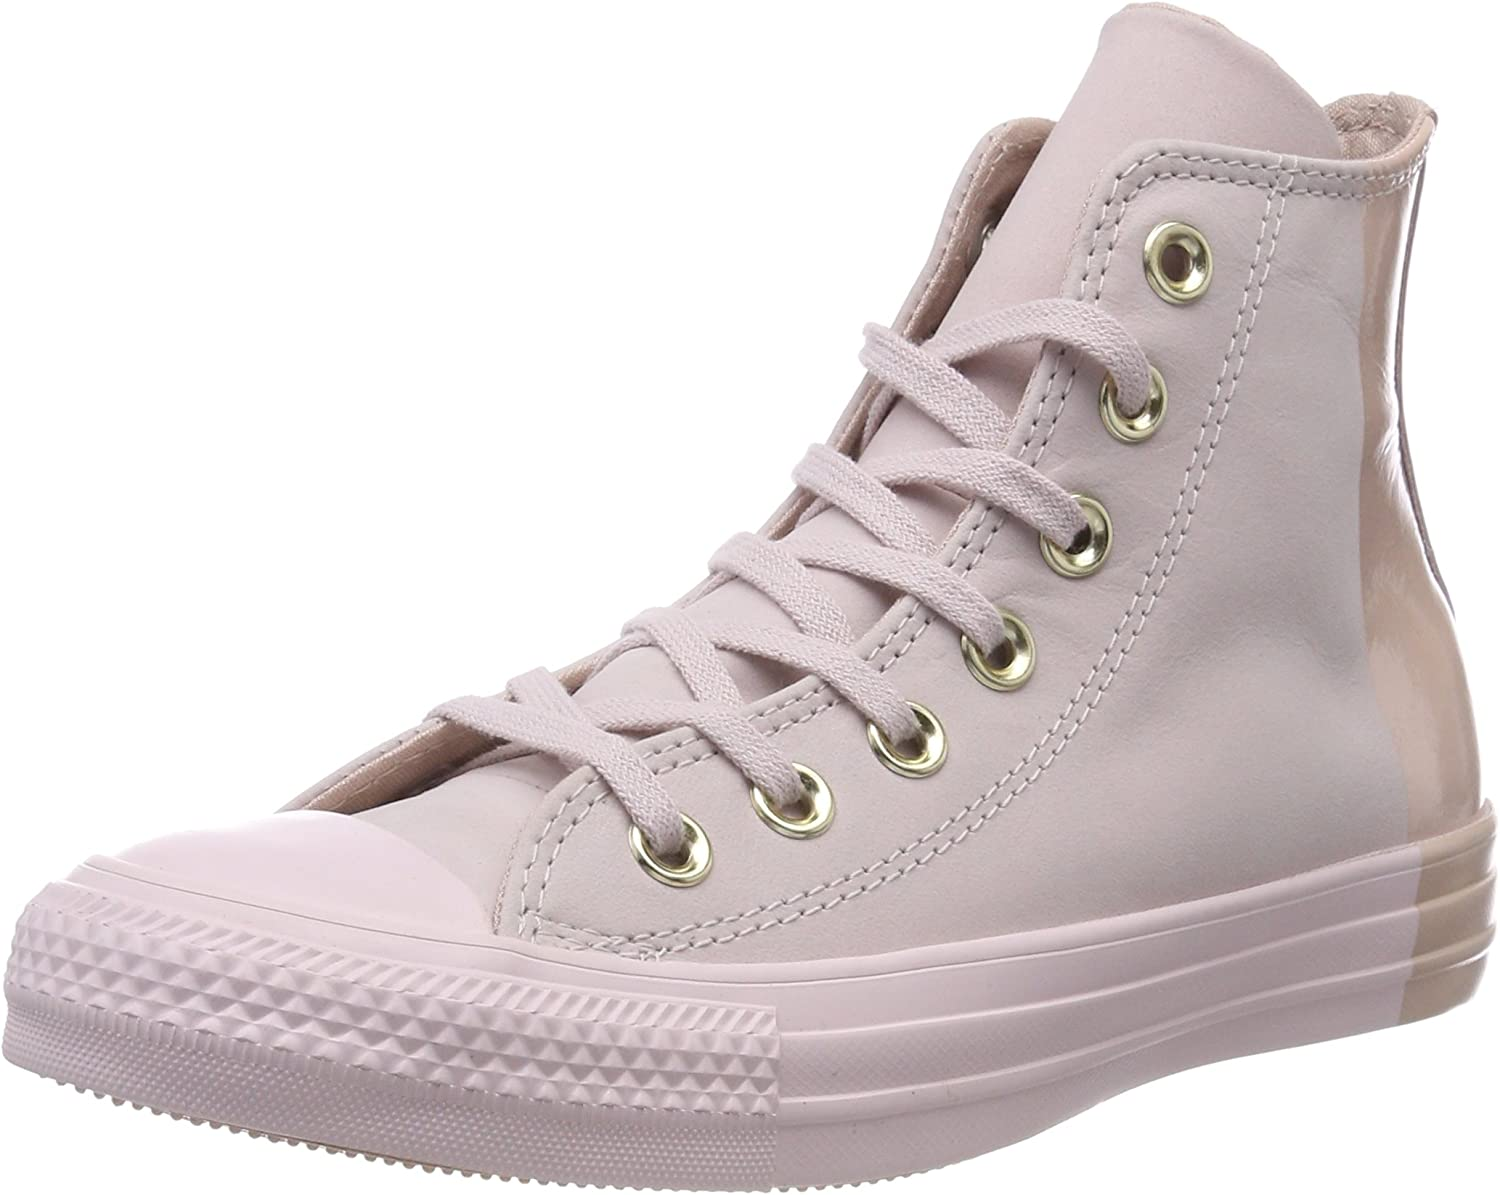 Converse Unisex Adults' Chuck Taylor All Star High Hi-Top Trainers